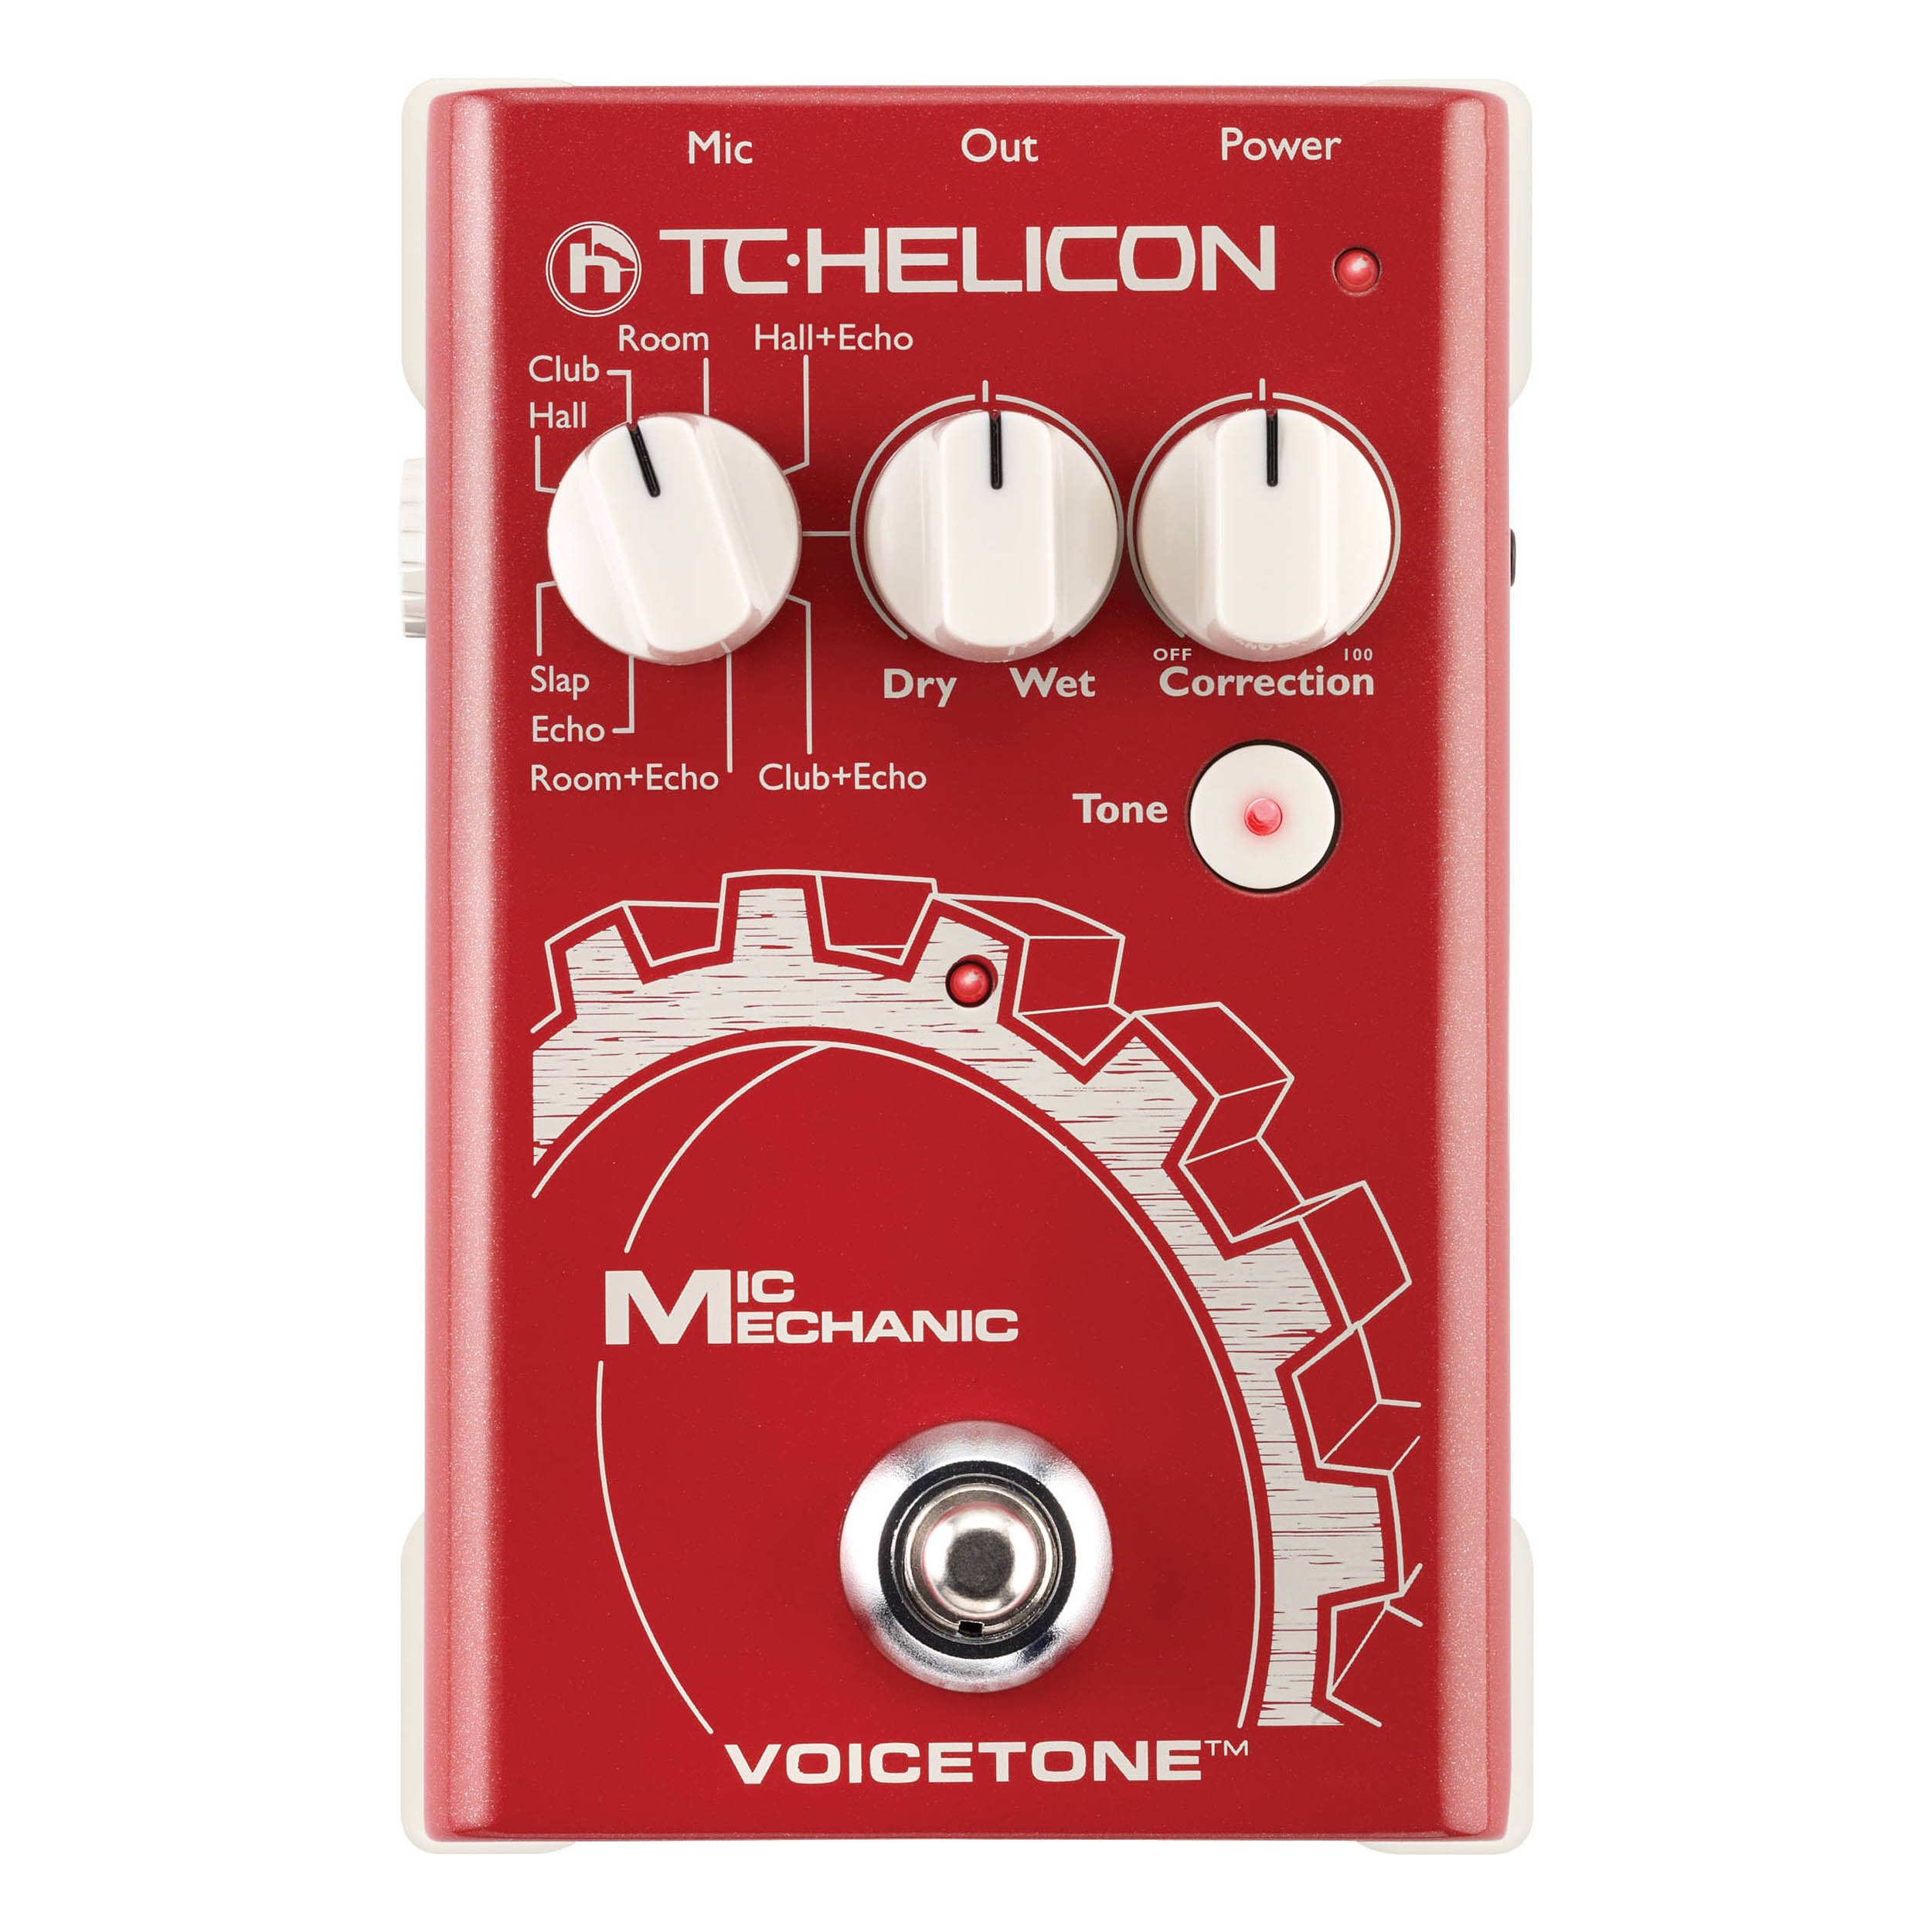 TC Helicon Mic Mechanic Vocal Processor Pedal by TC Helicon